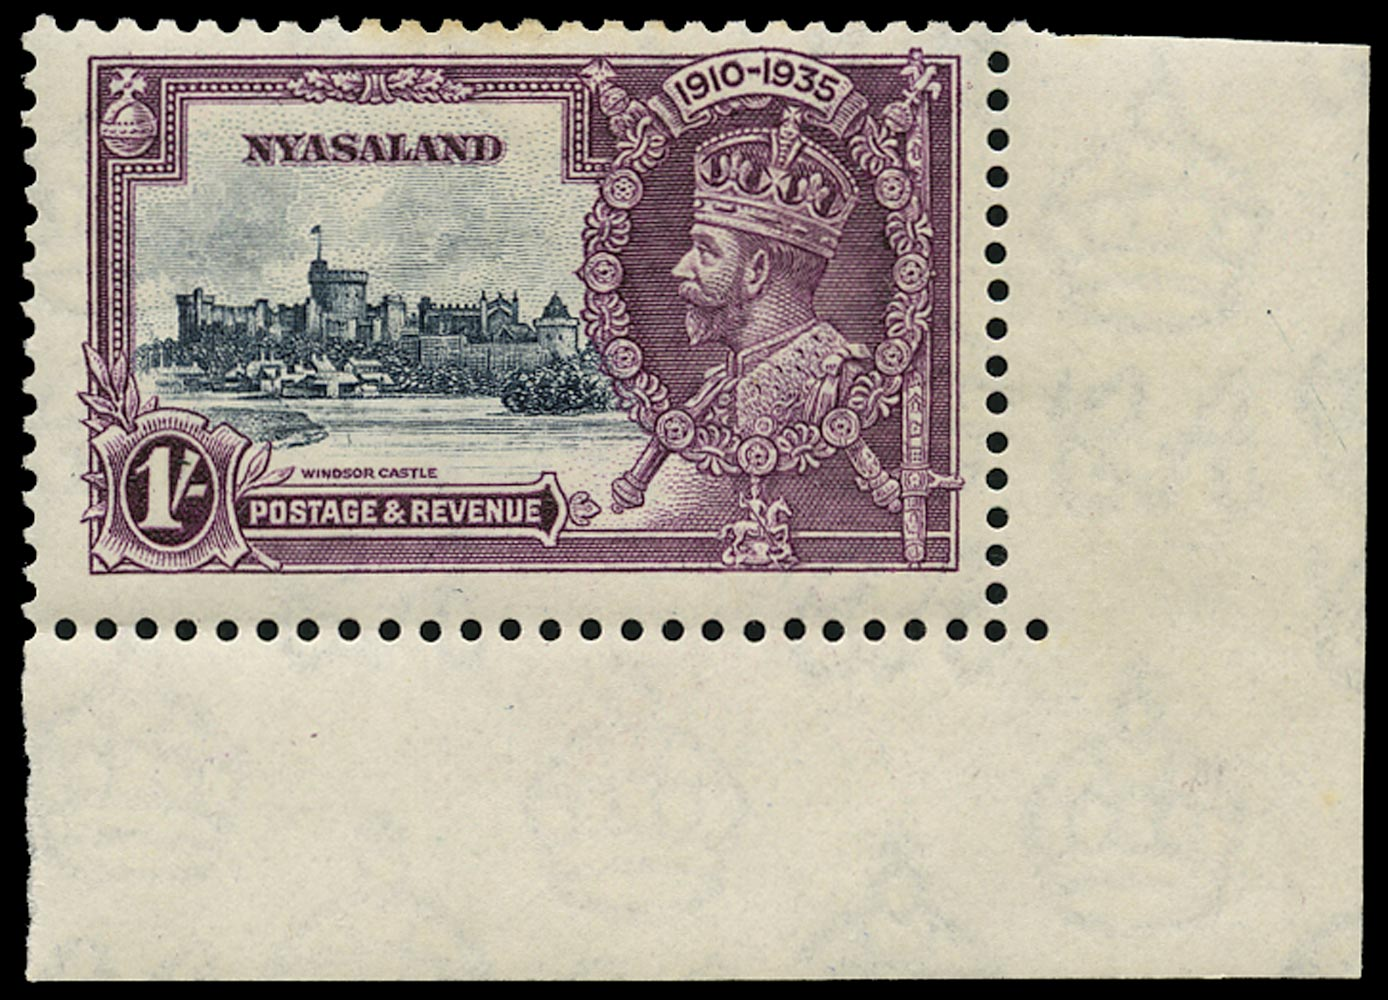 NYASALAND 1935  SG126k Mint Silver Jubilee 1s slate and purple variety Kite and vertical log